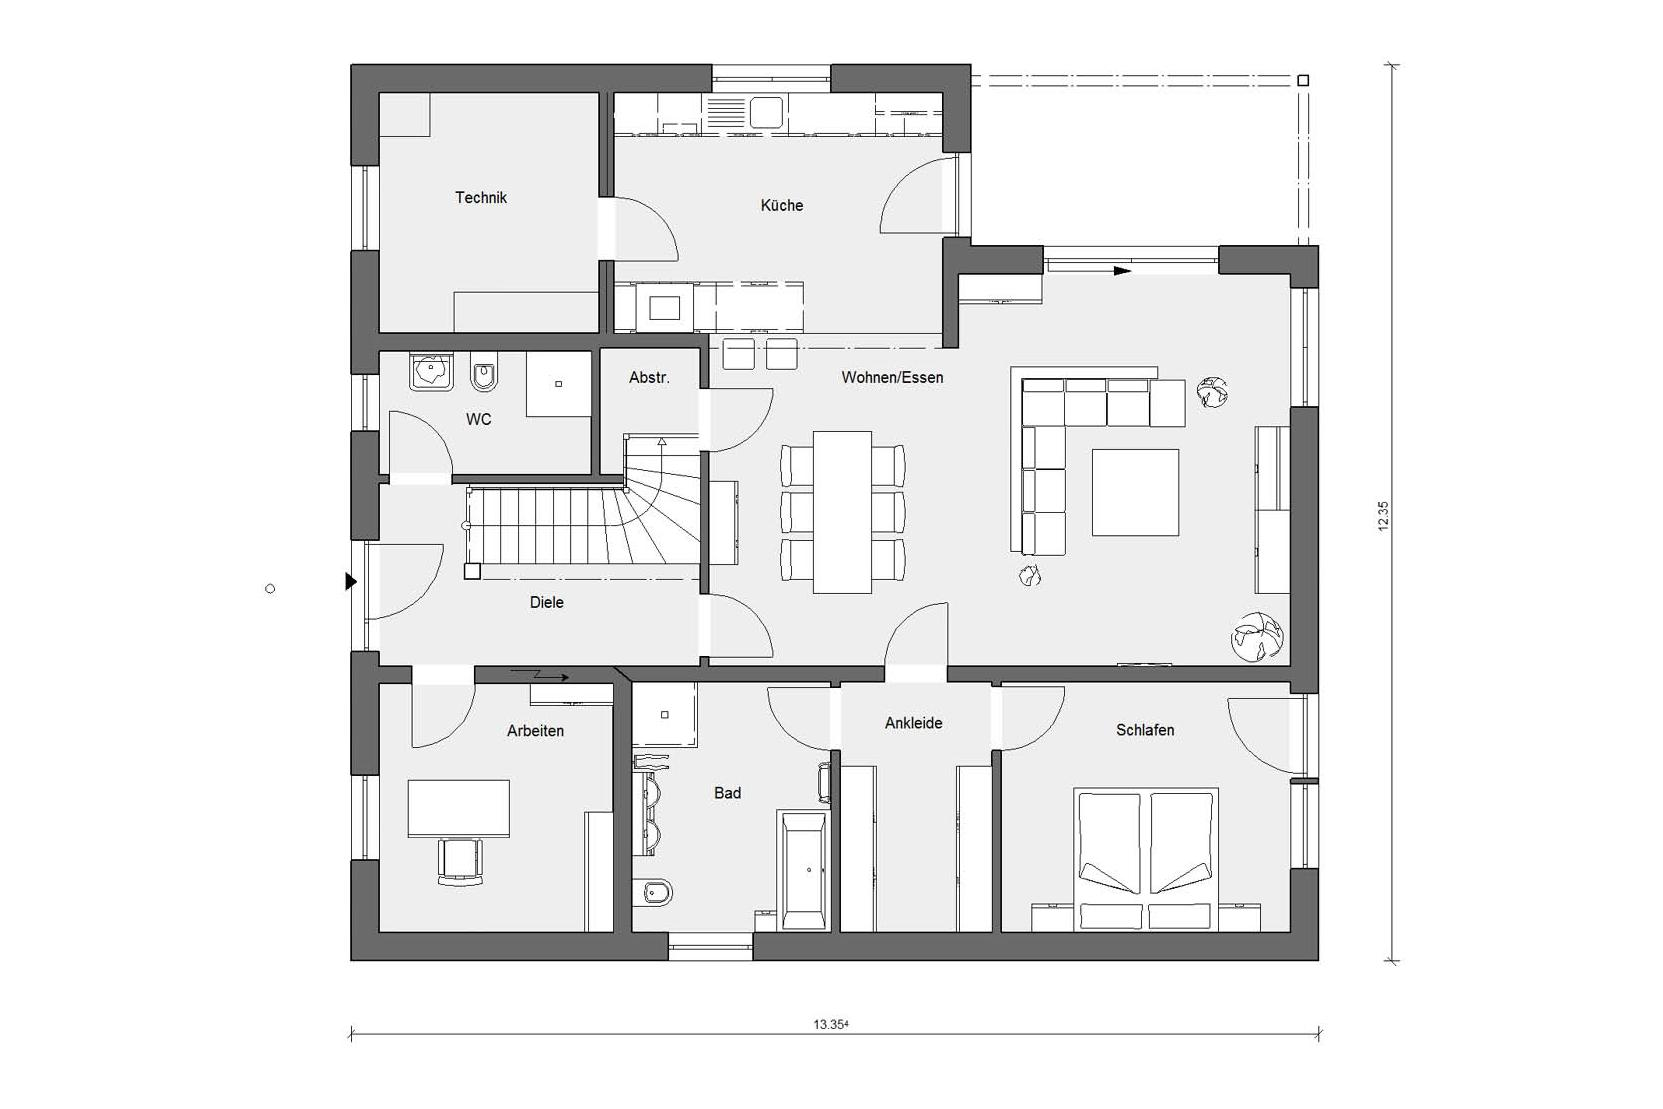 Floor plan ground floor E 15-264.1 Bungalow with pitched roof